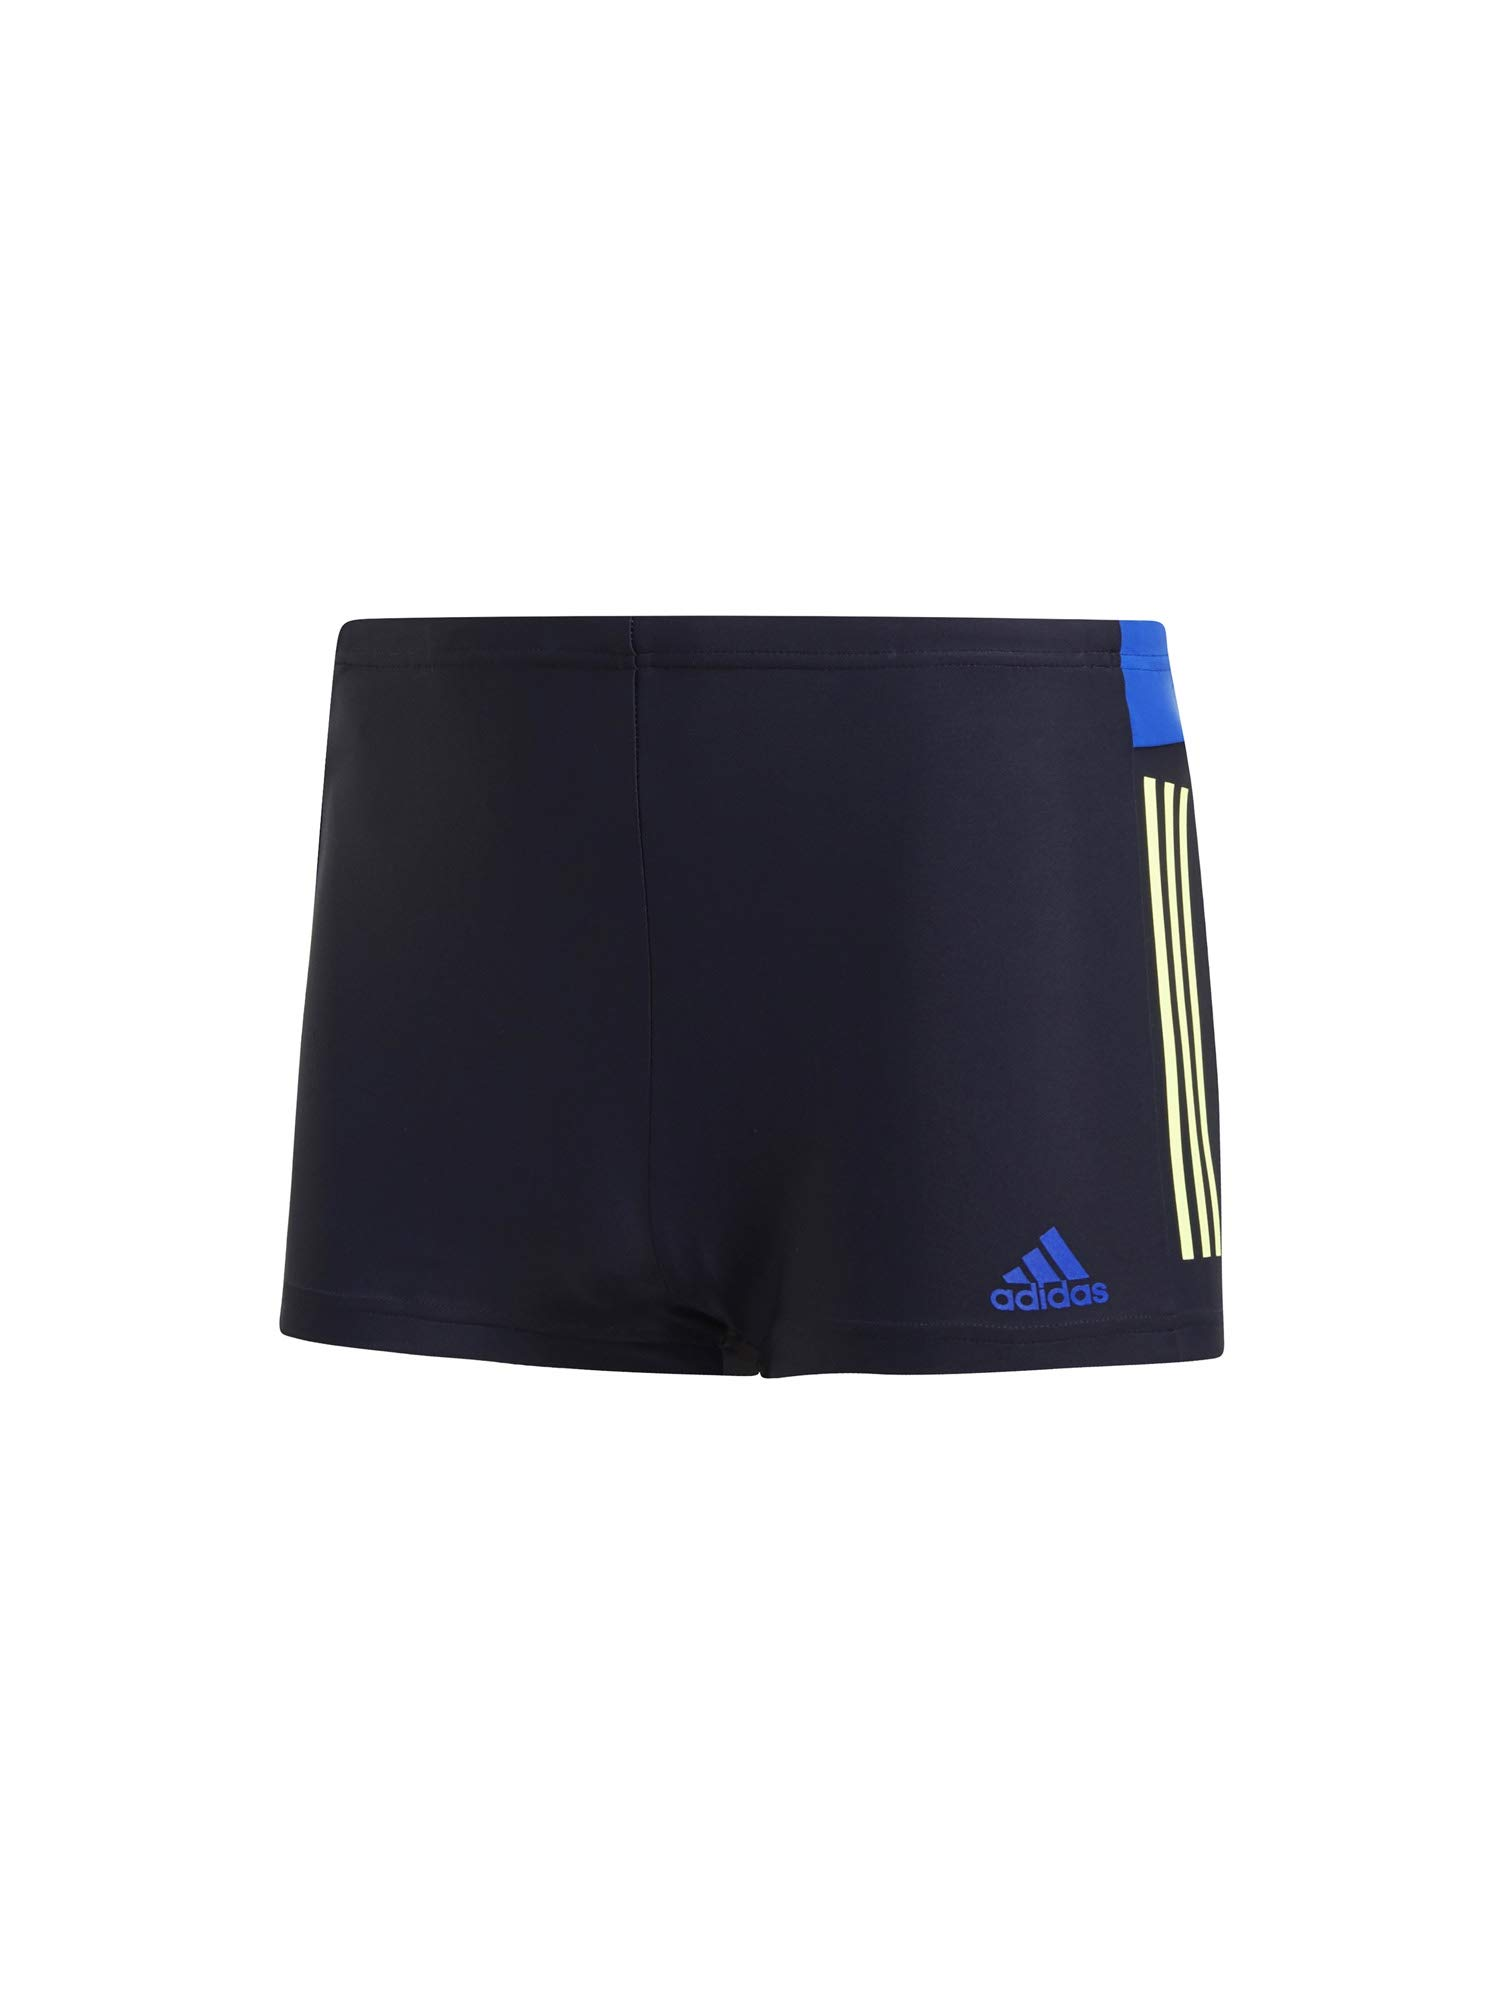 adidas Fit Bx III CB Swimsuit, Hombre